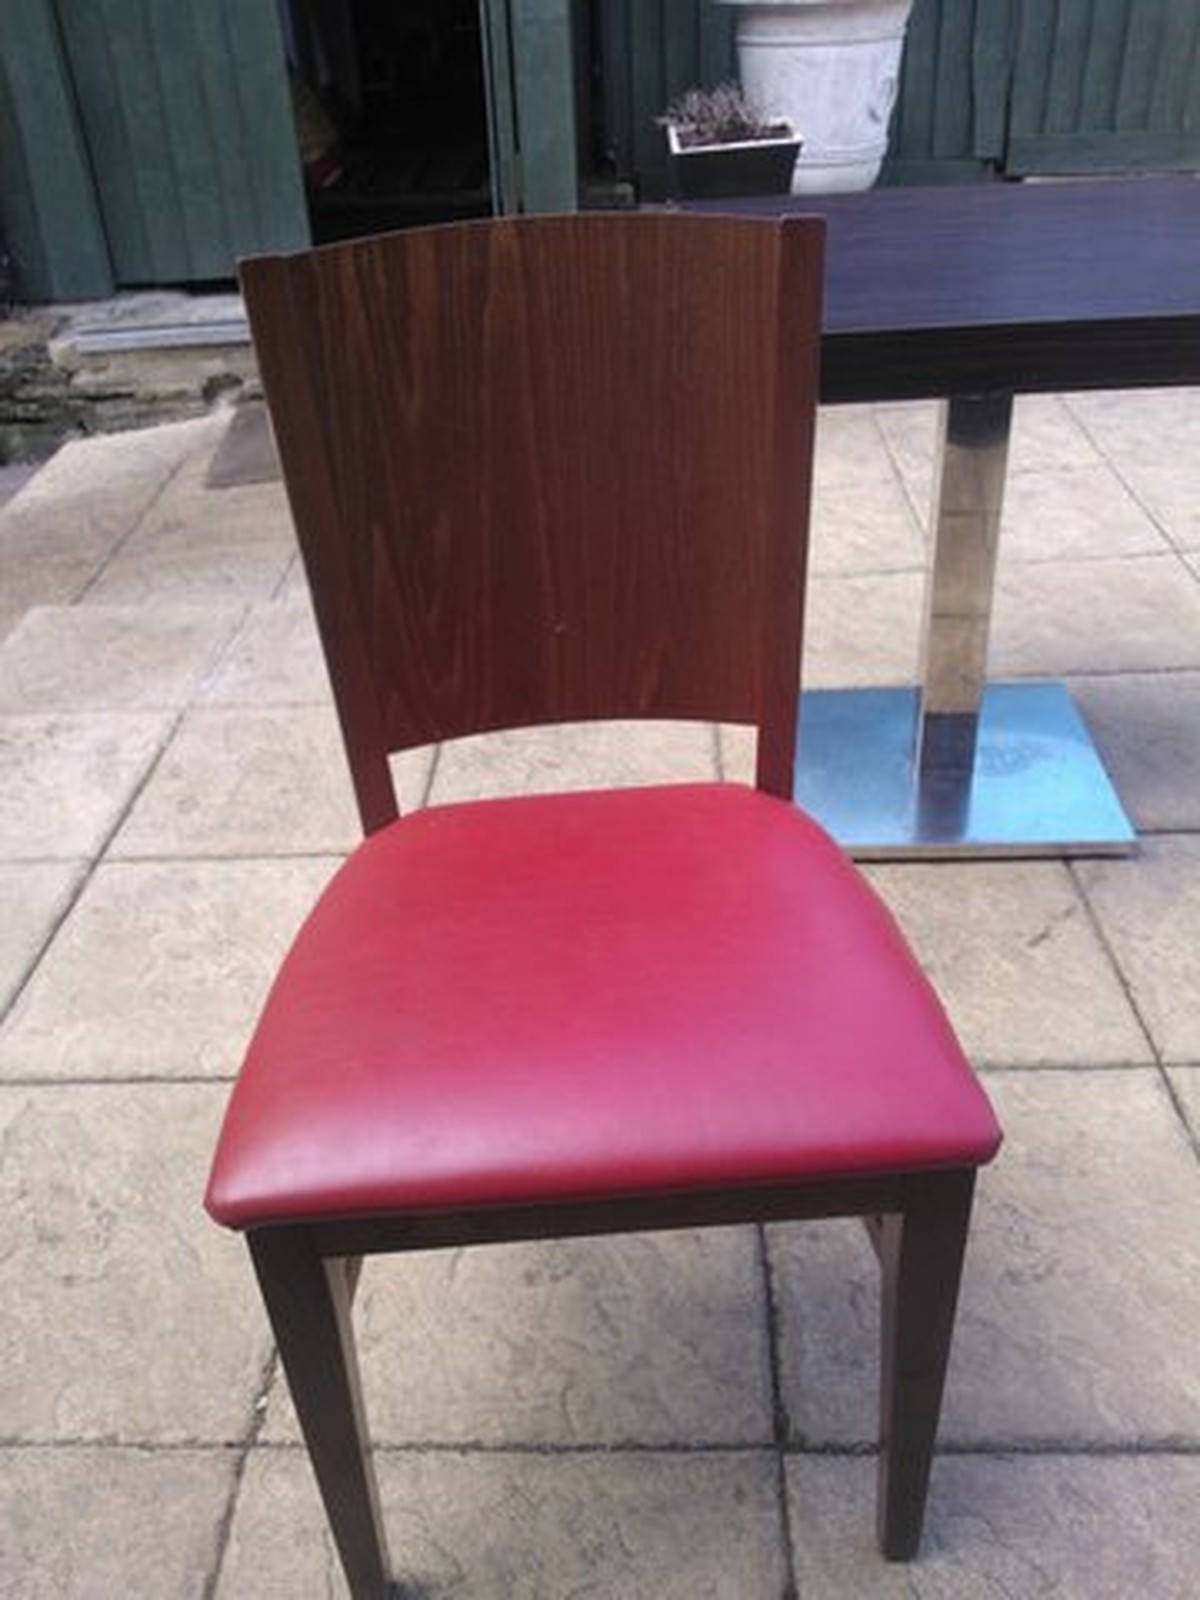 Used tables and chairs for restaurant -  Used Tables And Chairs